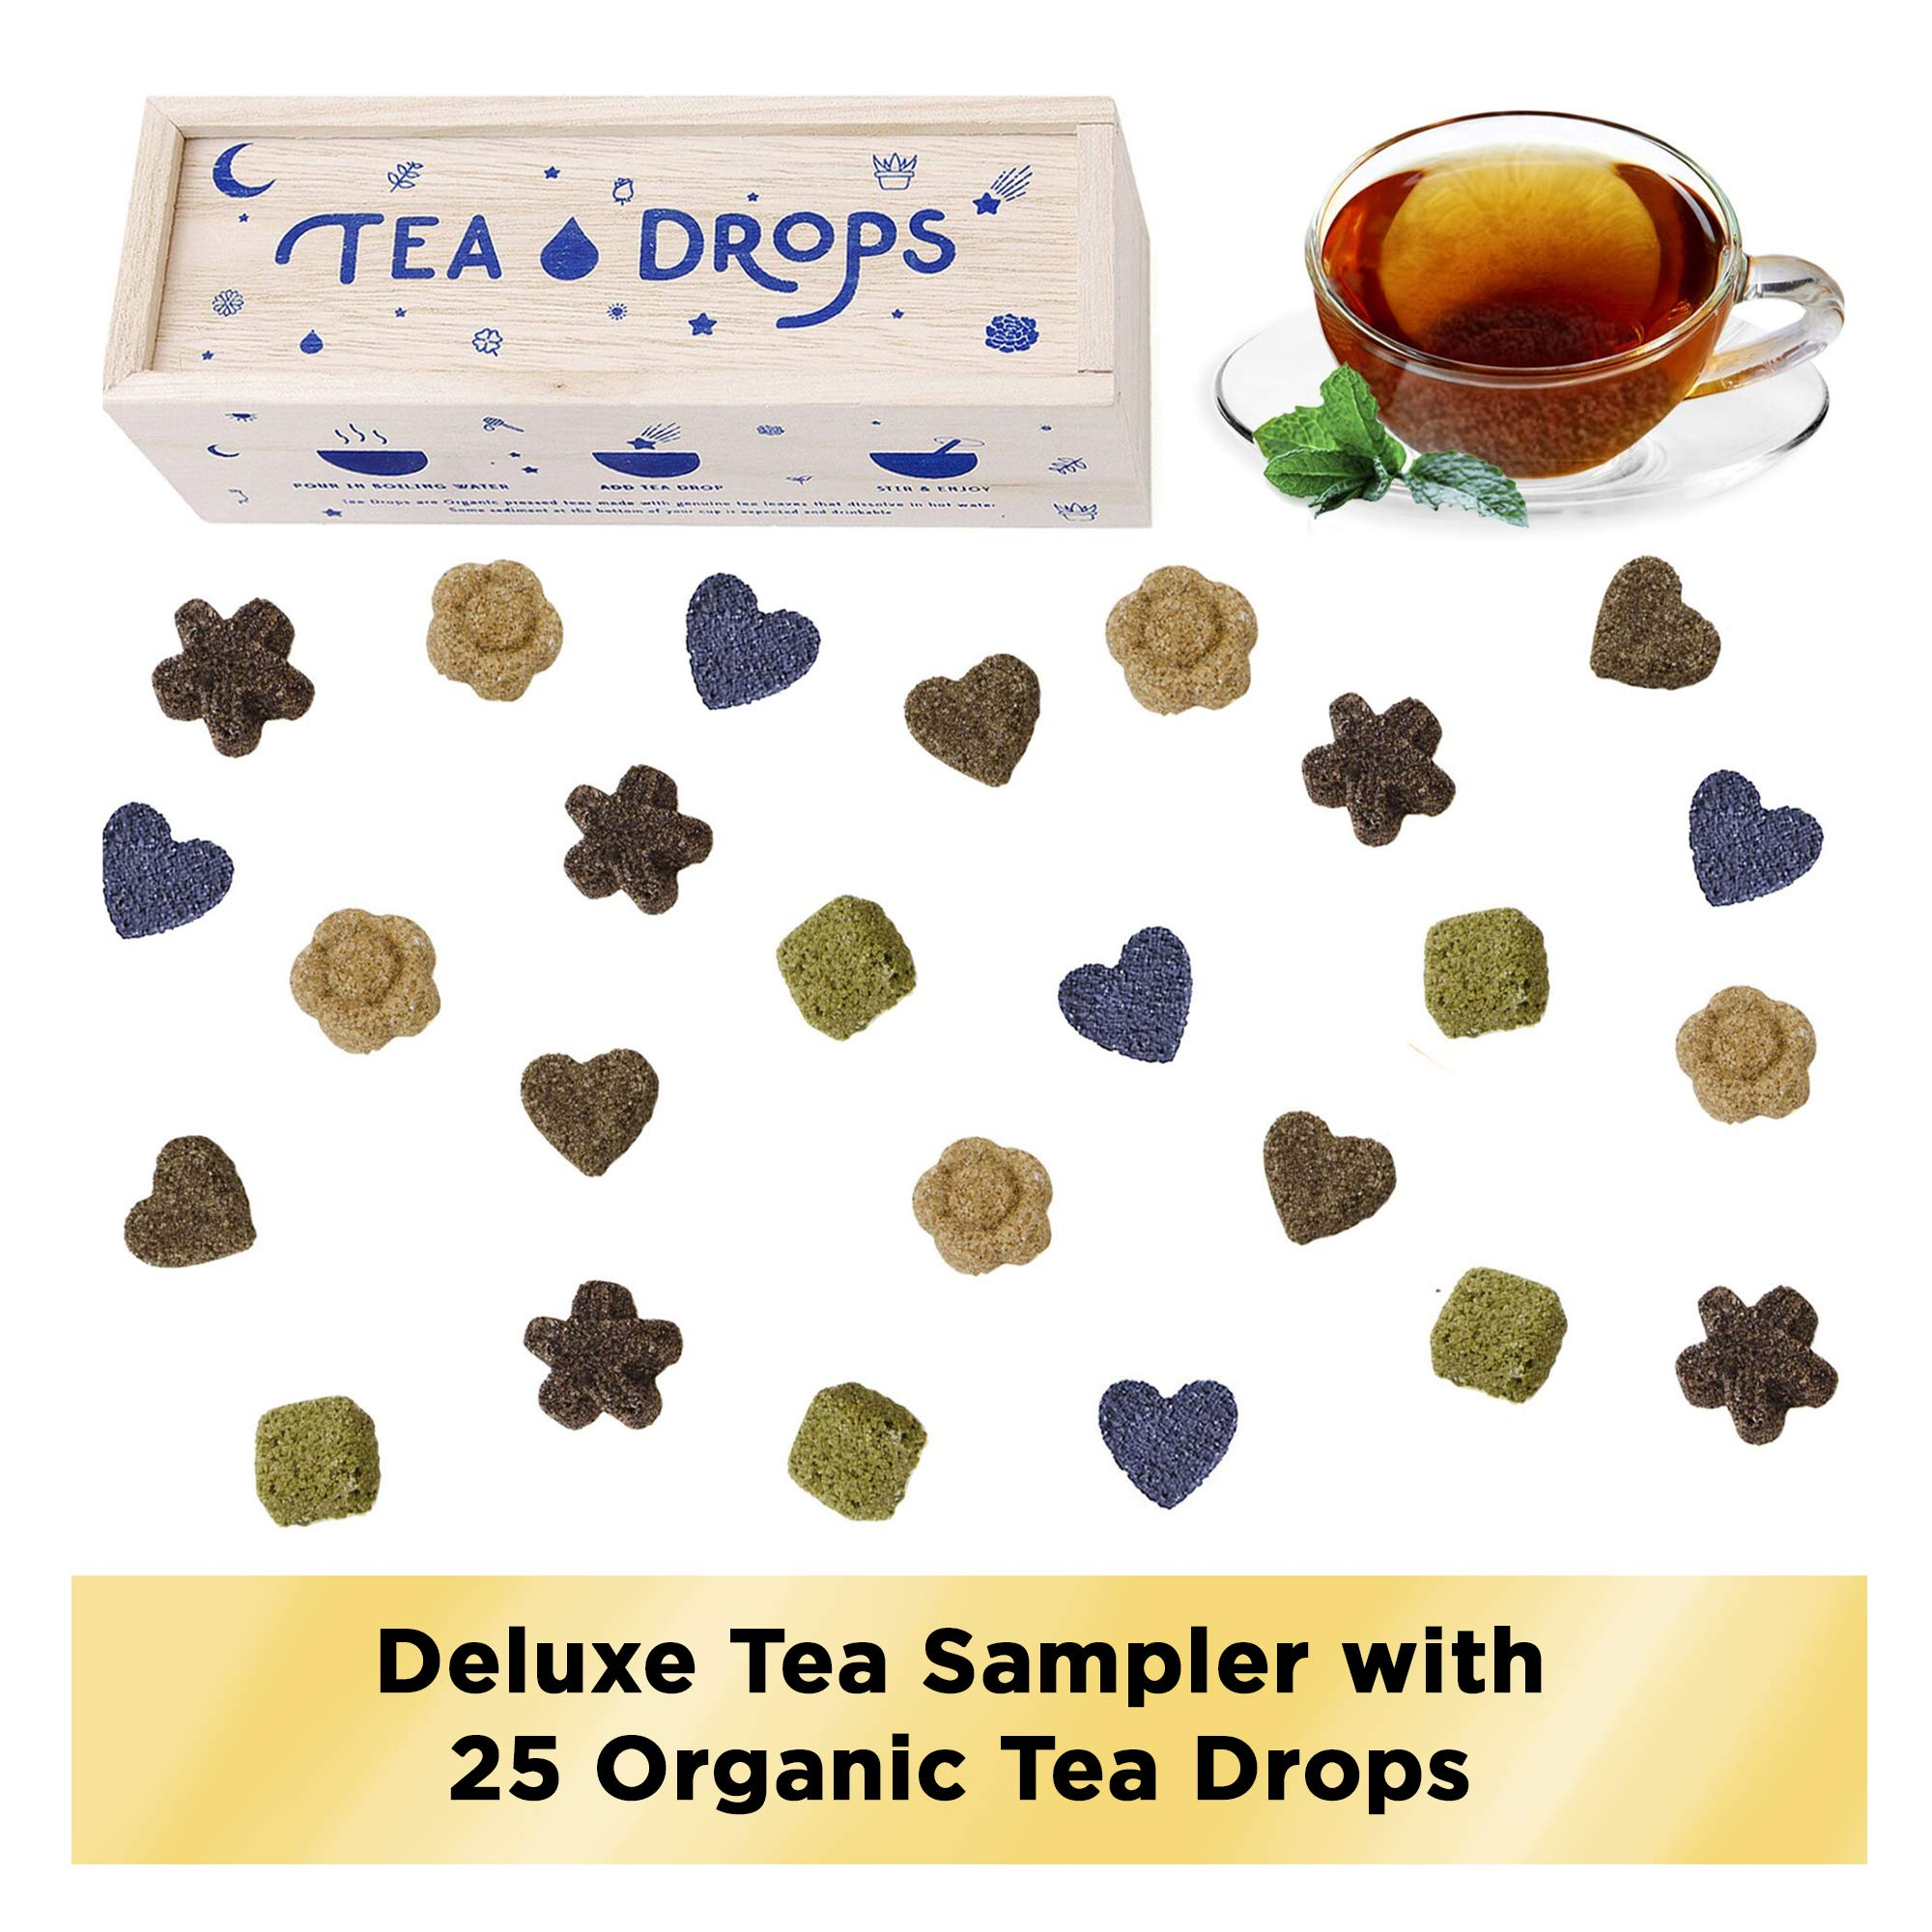 Sweetened Organic Loose Leaf Tea   Deluxe Herbal Sampler Assortment Box   Instant Pressed Teas Eliminate the Need for Teabags and Sweetener   Tea Lovers Gift   Delicious Hot or Iced   By Tea Drops by Tea Drops